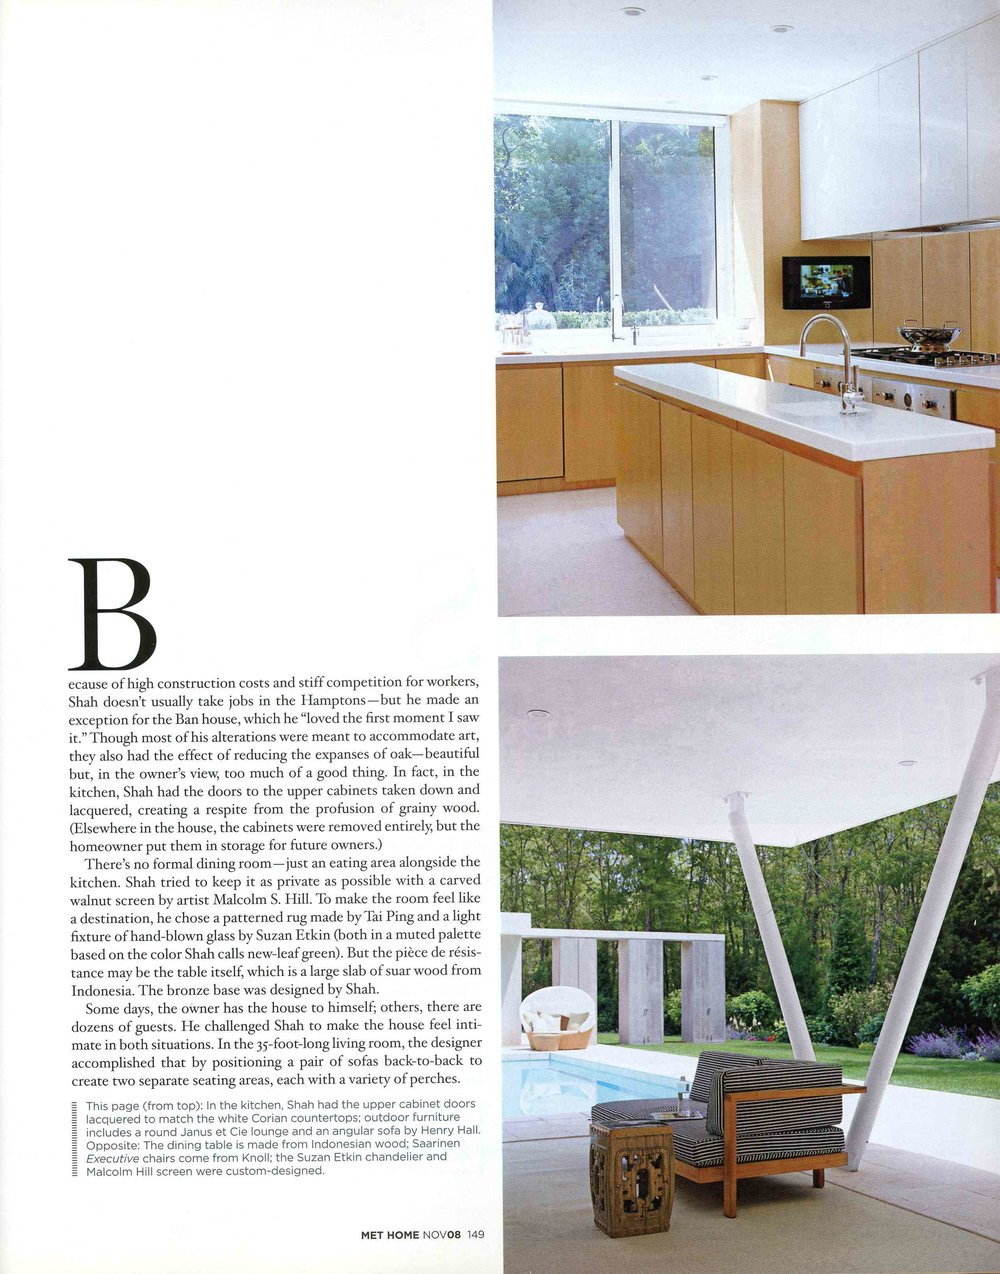 Met Home_Nov 08_Hamptons House_Full Article_Page_09.jpg